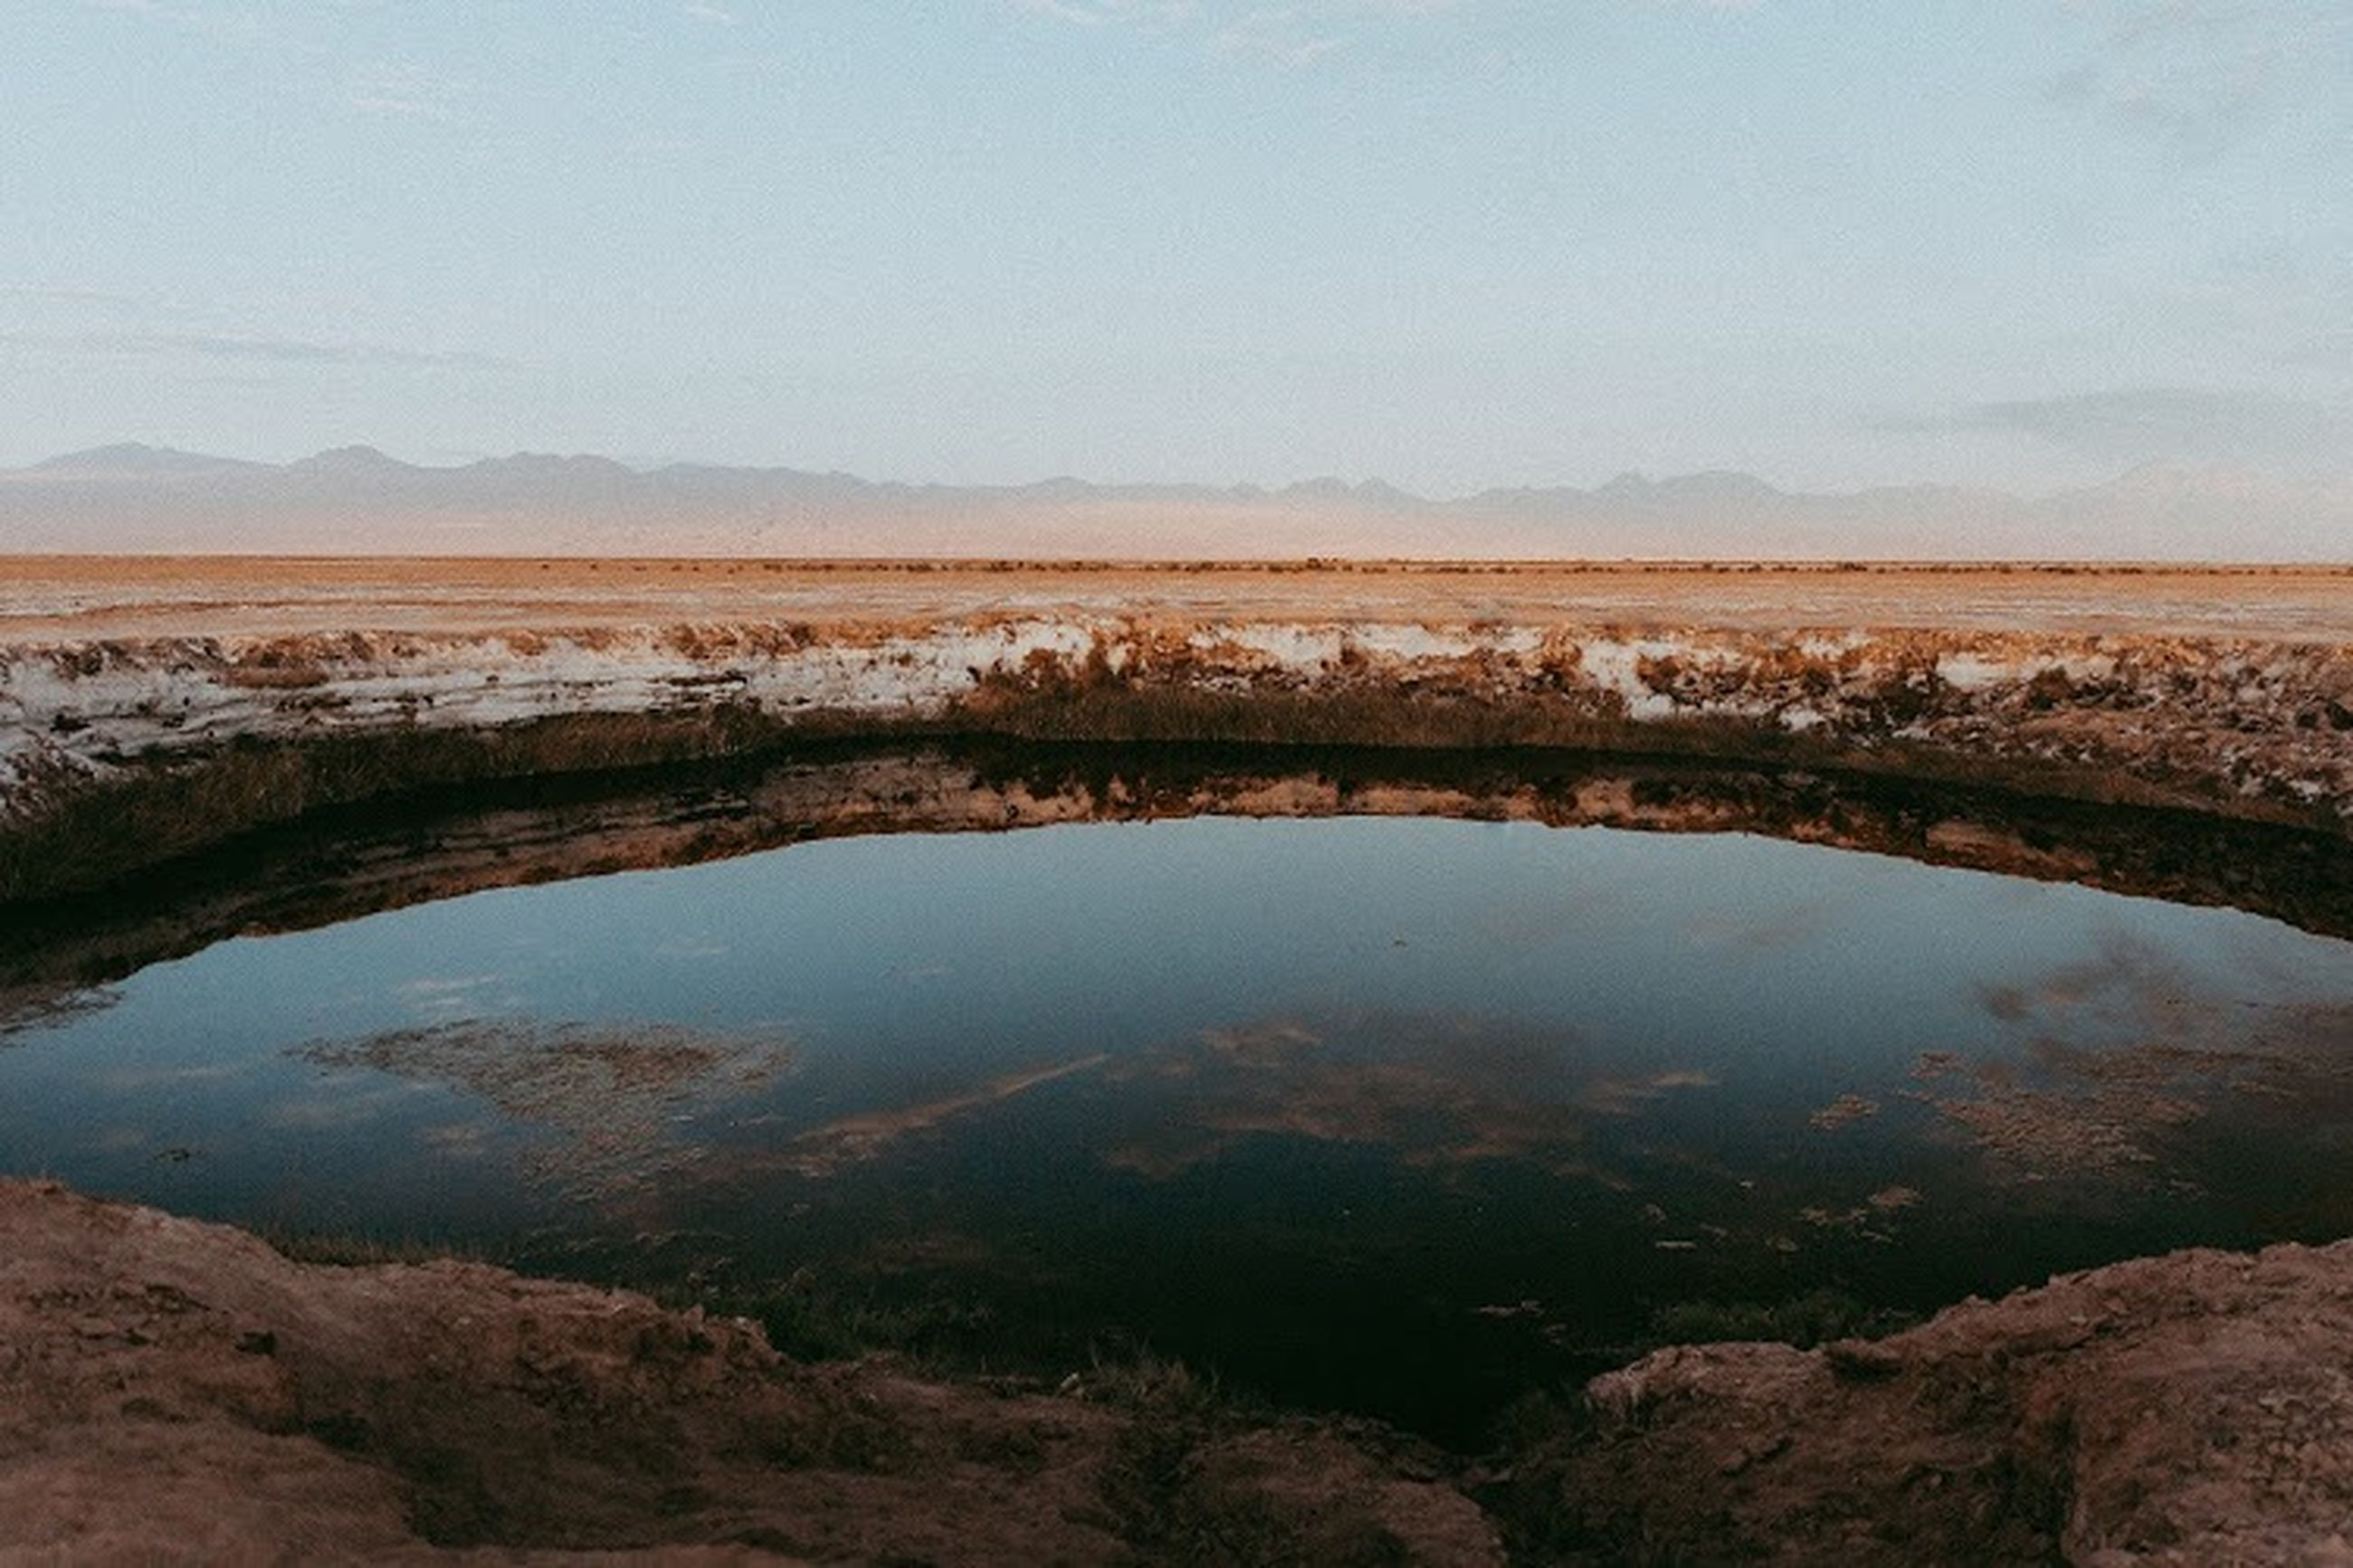 scenics - nature, tranquil scene, tranquility, beauty in nature, water, no people, sky, landscape, non-urban scene, environment, reflection, nature, mountain, day, lake, remote, plant, high angle view, land, outdoors